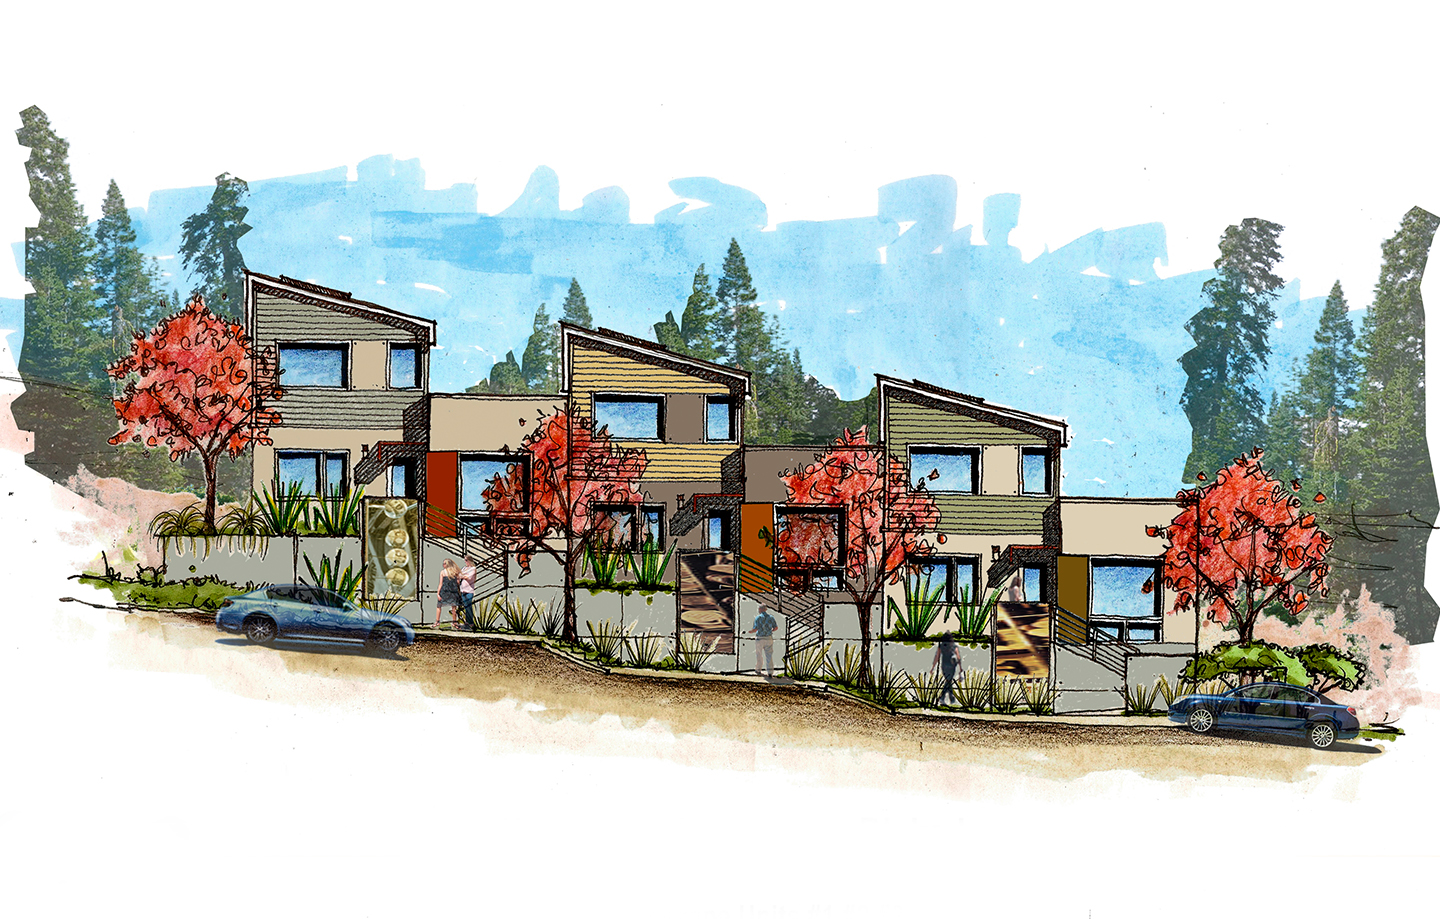 Habitat for Humanity Residence - Scotts Valley, CA - Rendering Stairs